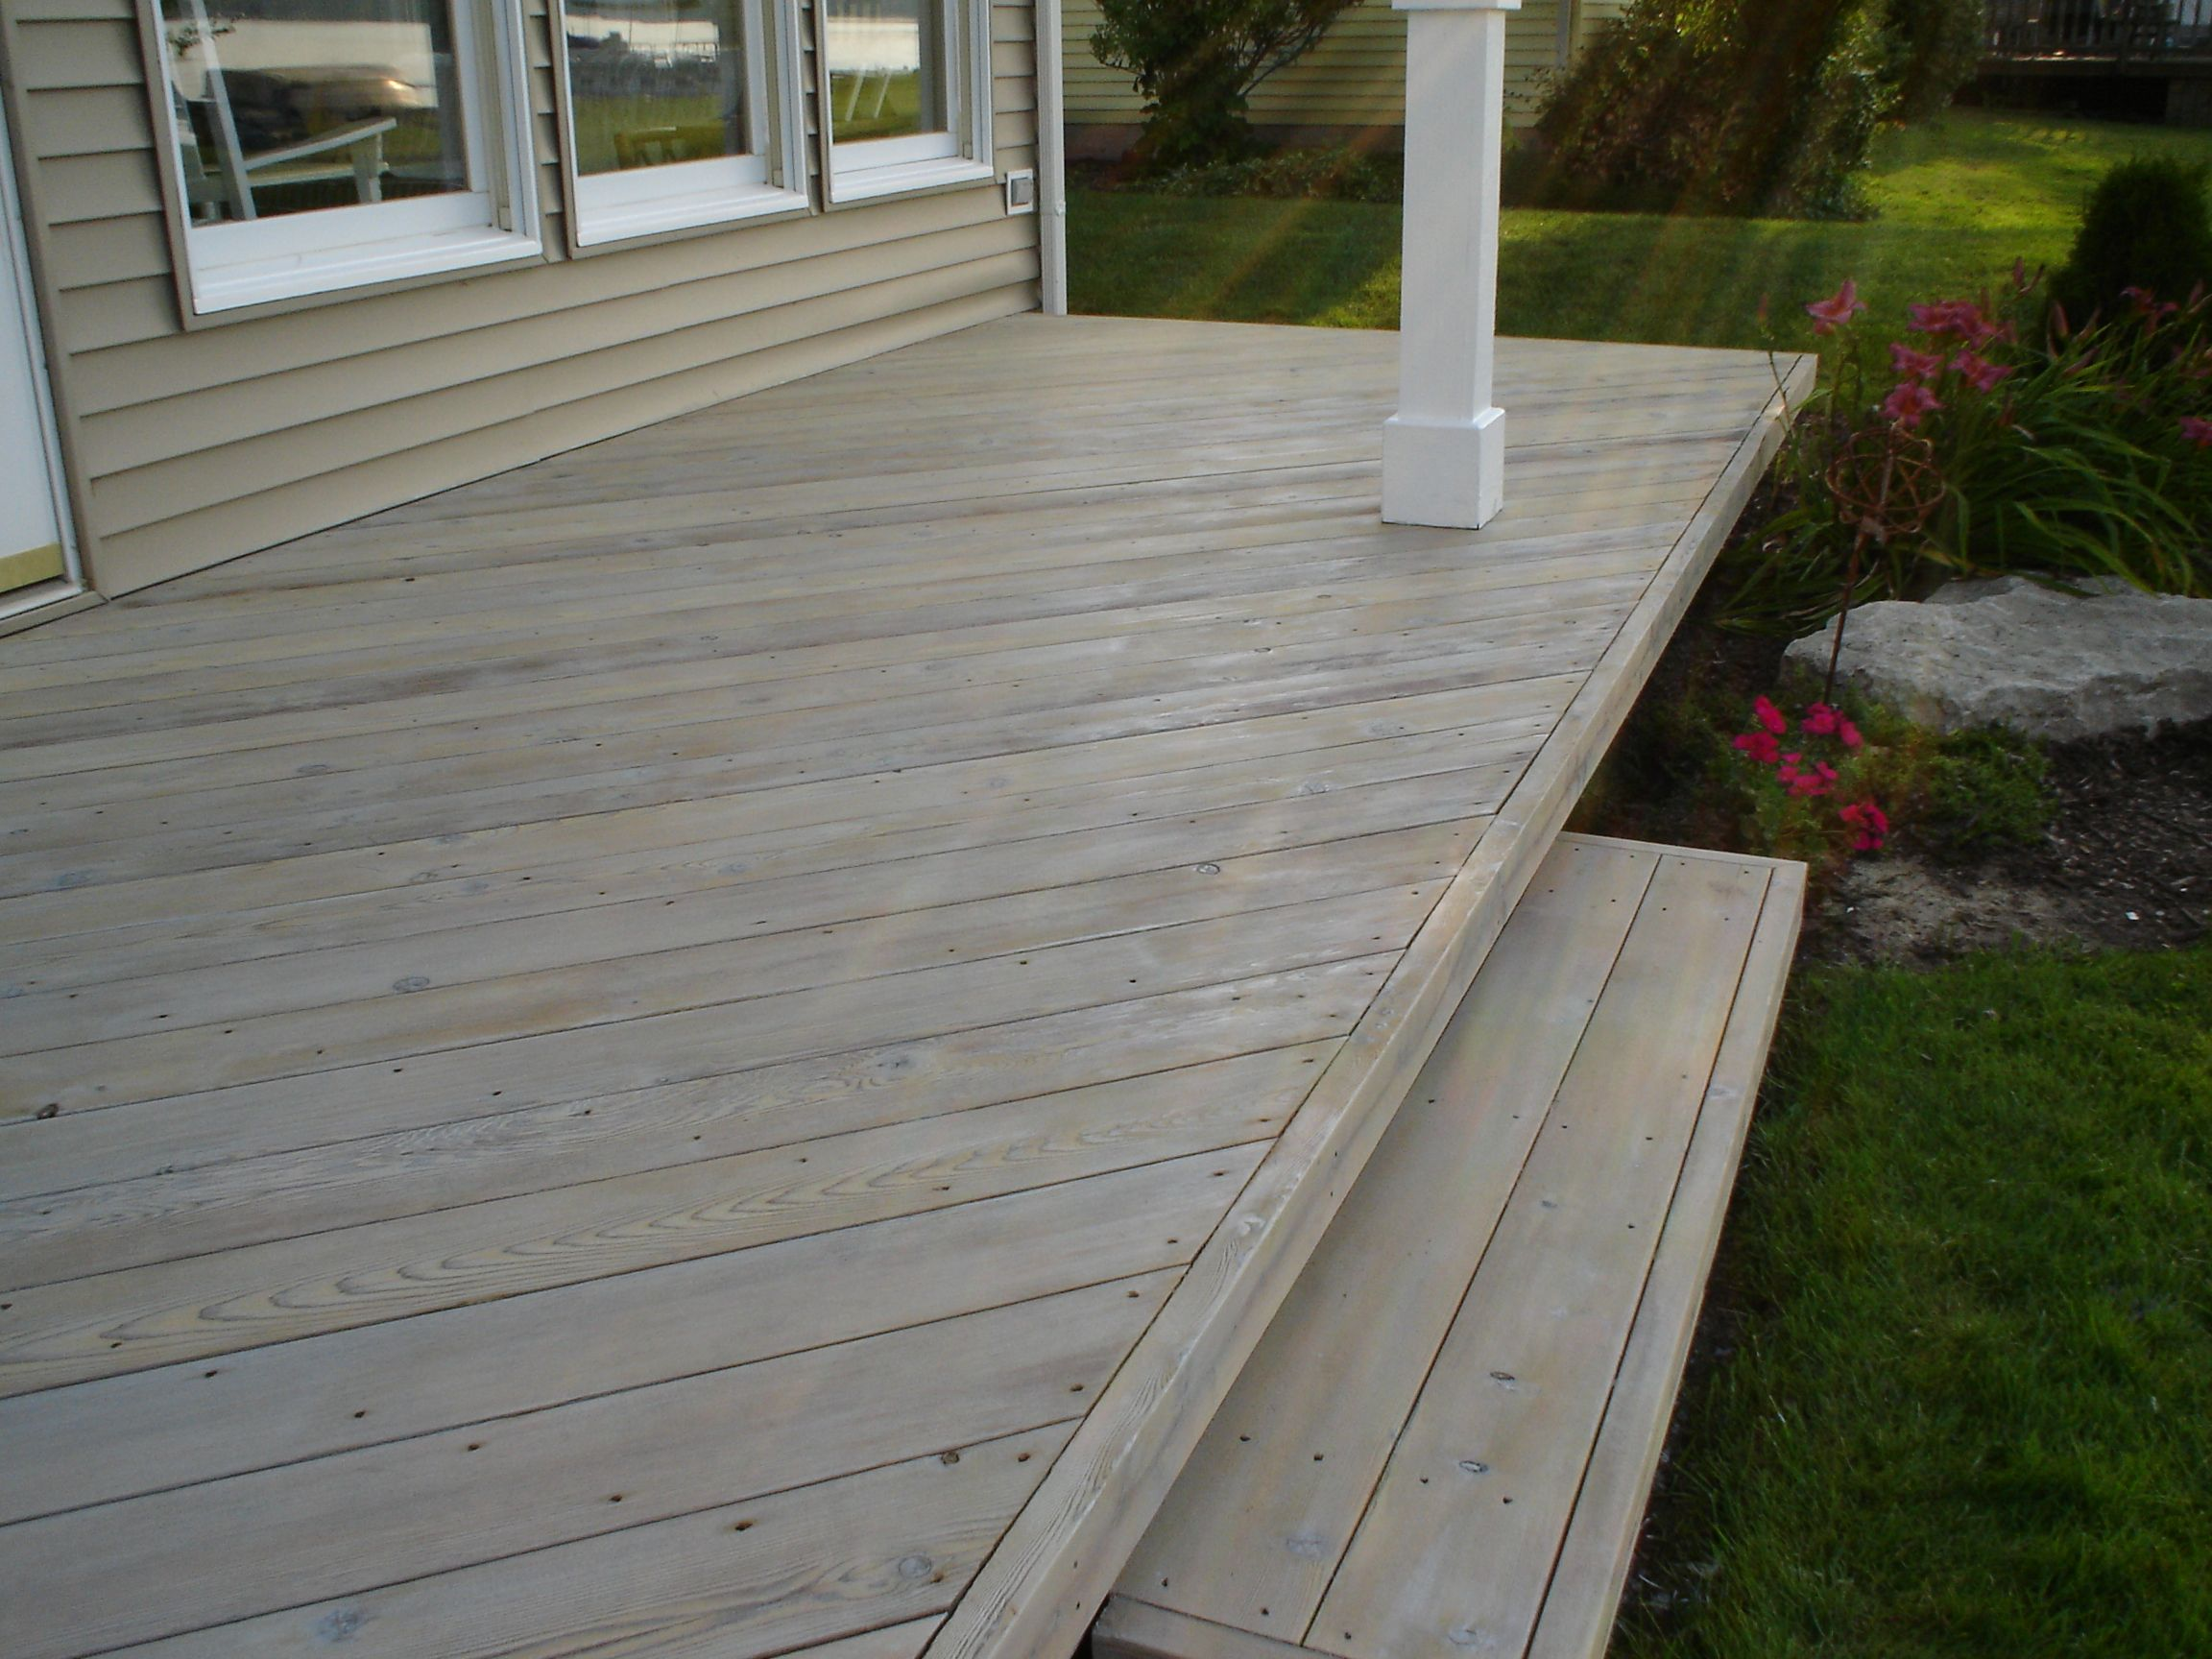 Inspiring Deck Finish 4 Cape Cod Grey Deck Stain Colors Staining Deck Deck Paint Patio Stain